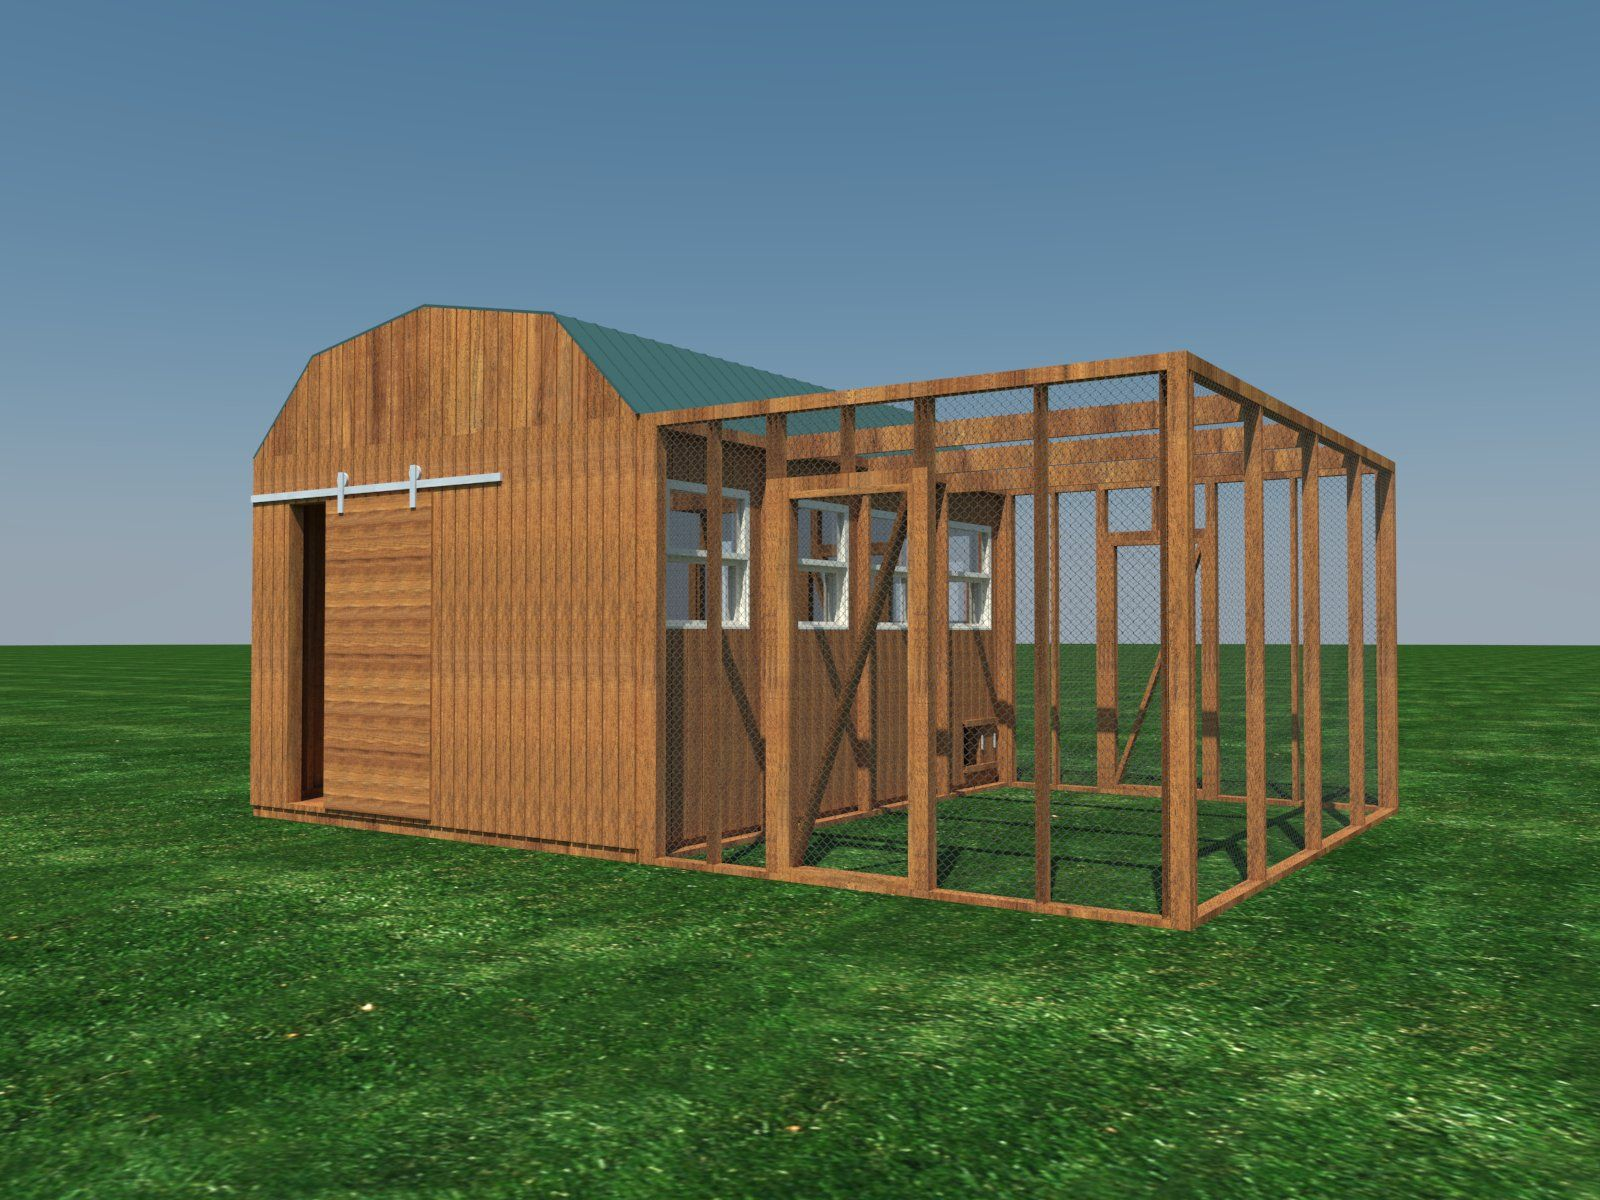 Poultry Chicken Coop Plans DIY Backyard Barn Hen House Cage with Run 8/' x 16/'